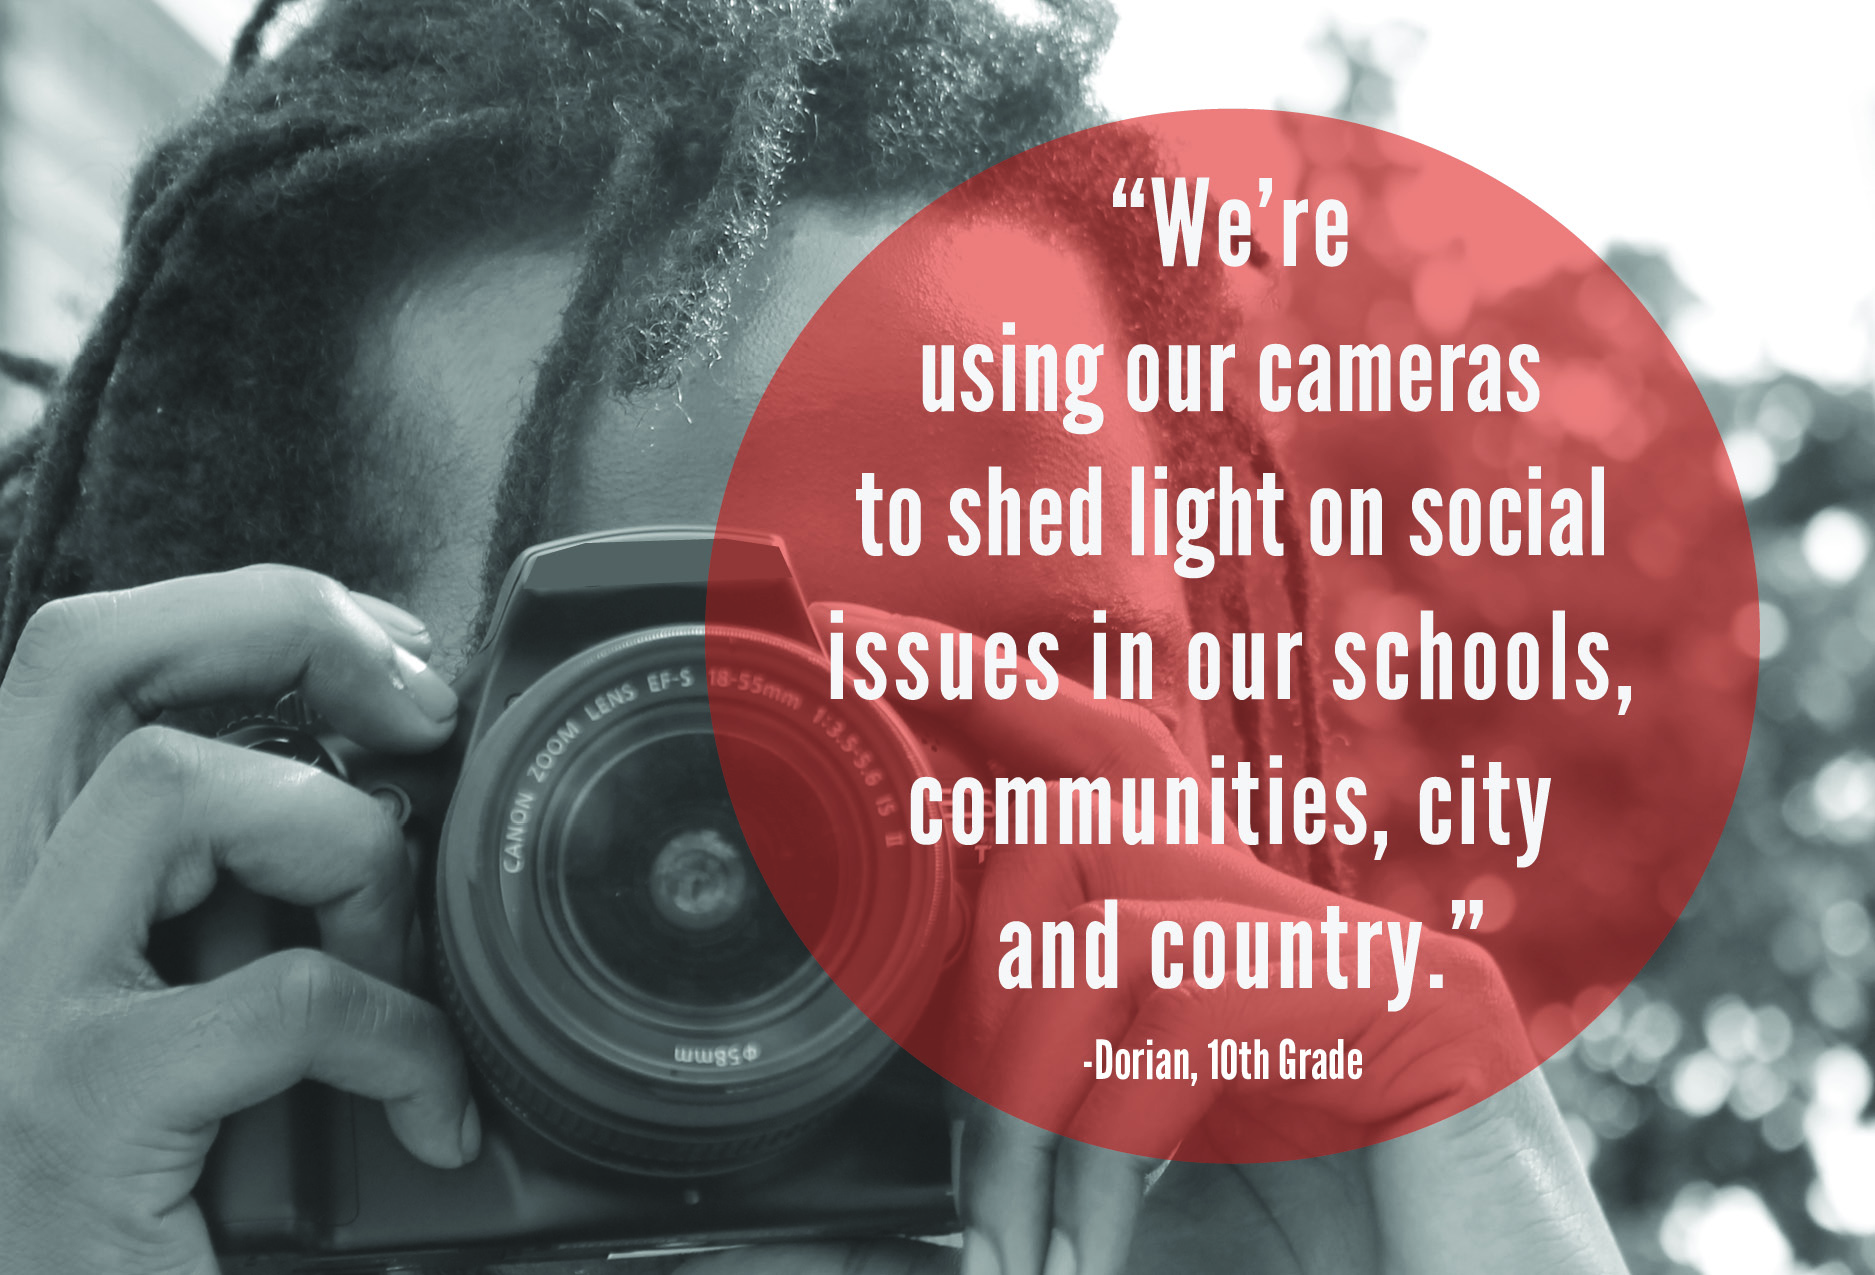 """We're using our cameras to shed light on issues in our schools, communities, city and country."" -Dorian, 10th Grade"